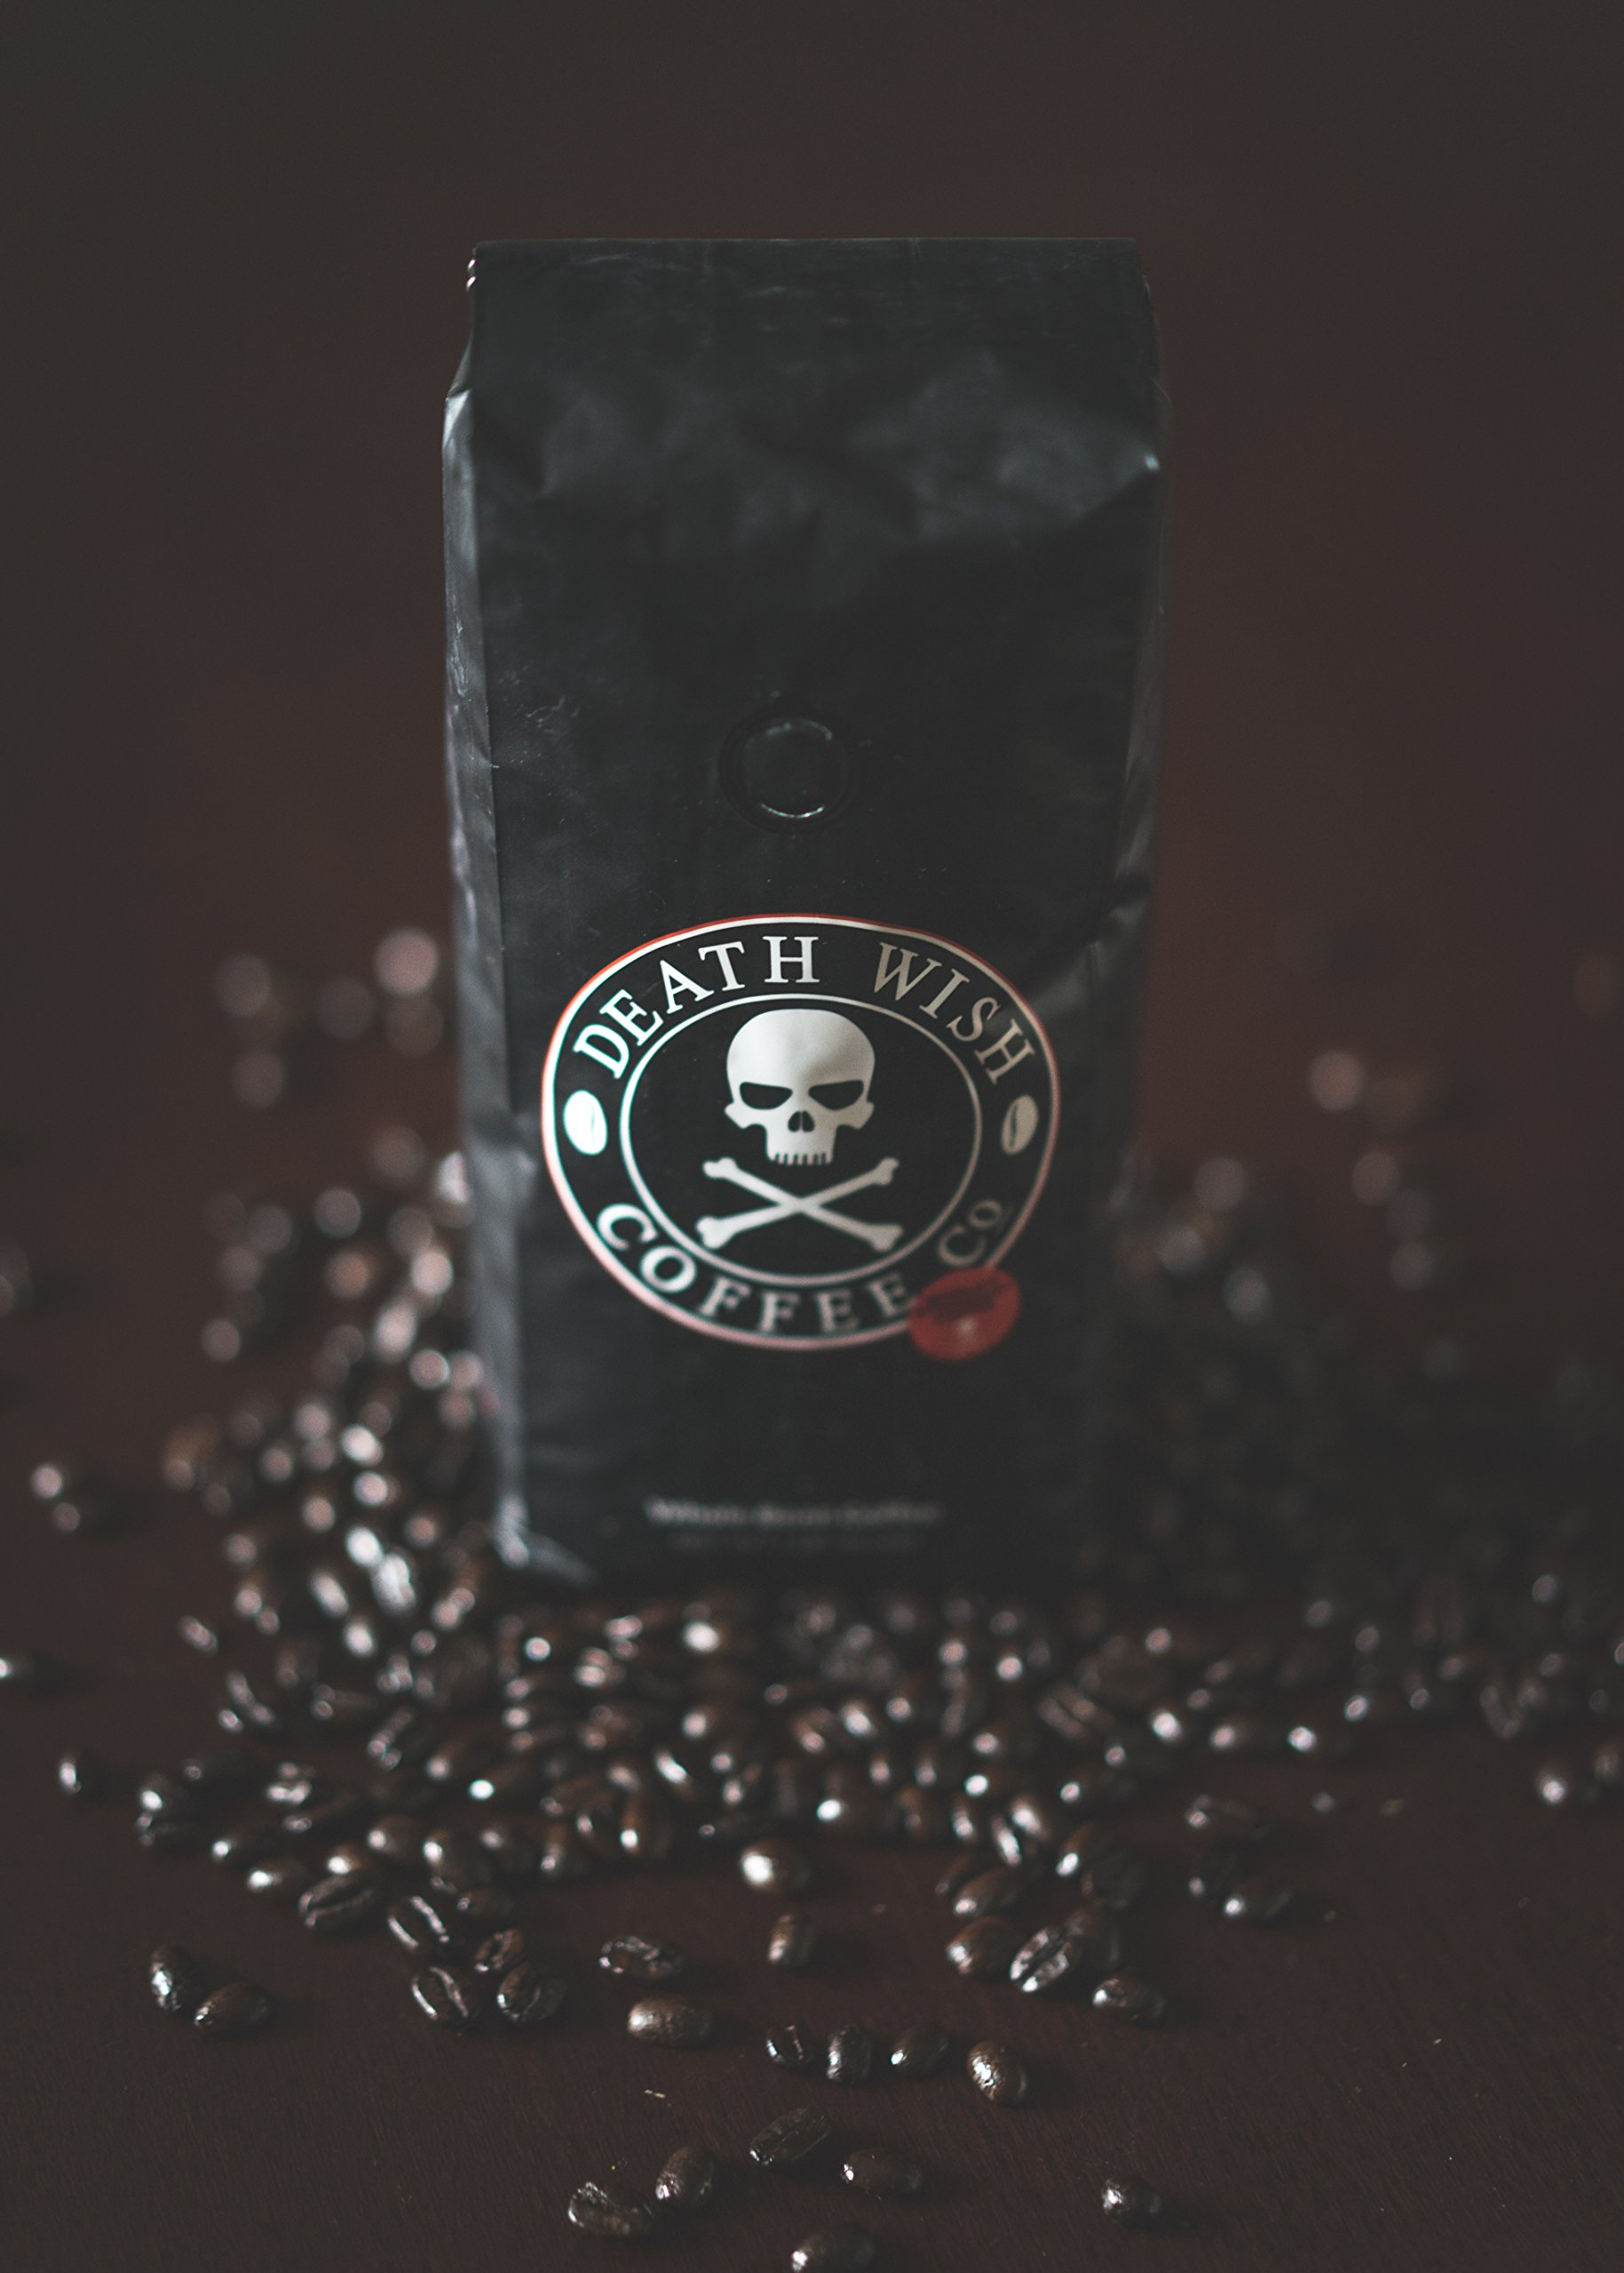 Death Wish Whole Bean Coffee Bundle Deal, The World's Strongest Coffee, Fair Trade and USDA Certified Organic - 2 lb by Death Wish Coffee Co. (Image #5)